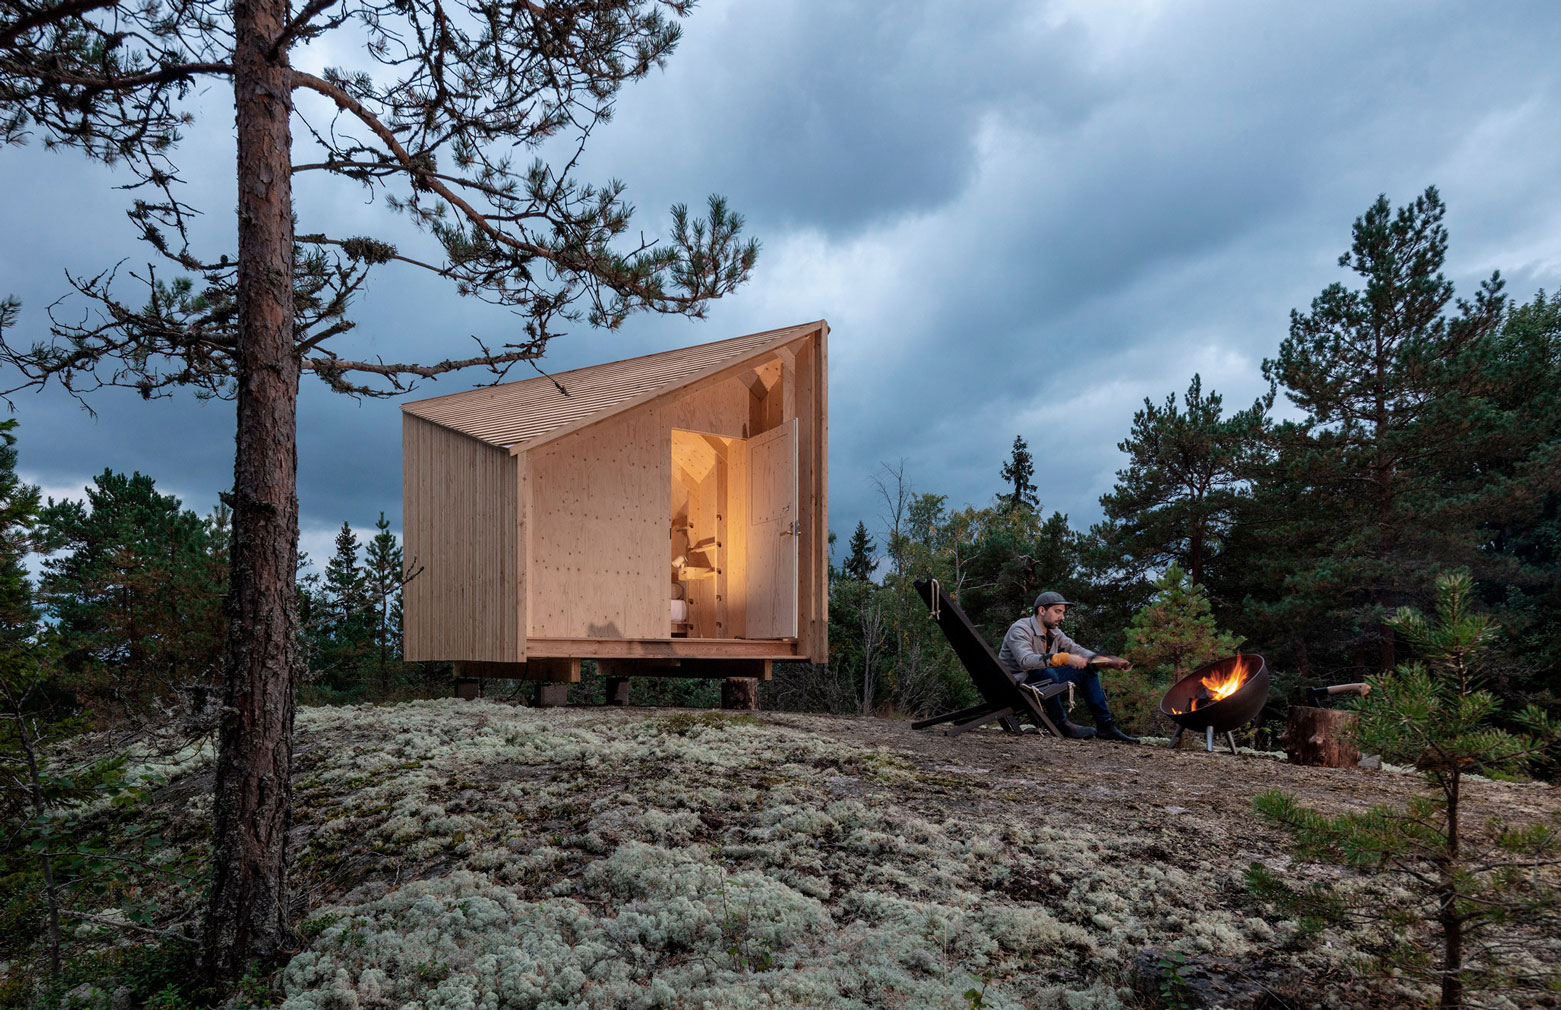 The offgrid cabin is designed for connecting with nature